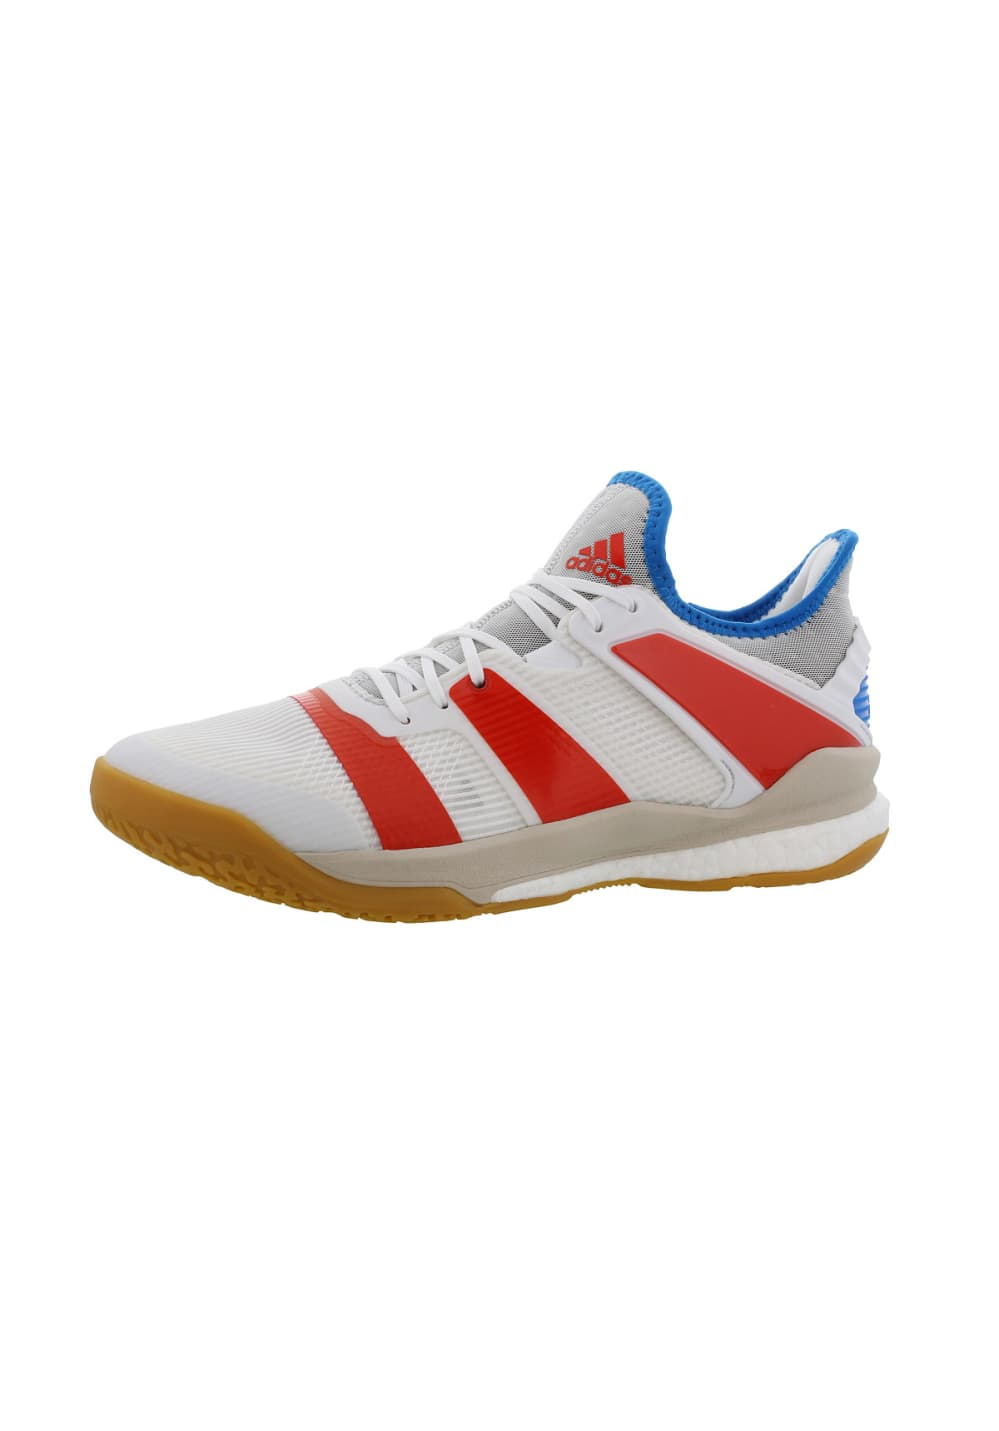 newest collection 26f65 d0c2e adidas-stabil-x-chaussures-handball-homme-blanc-pid-0002000586301.jpg